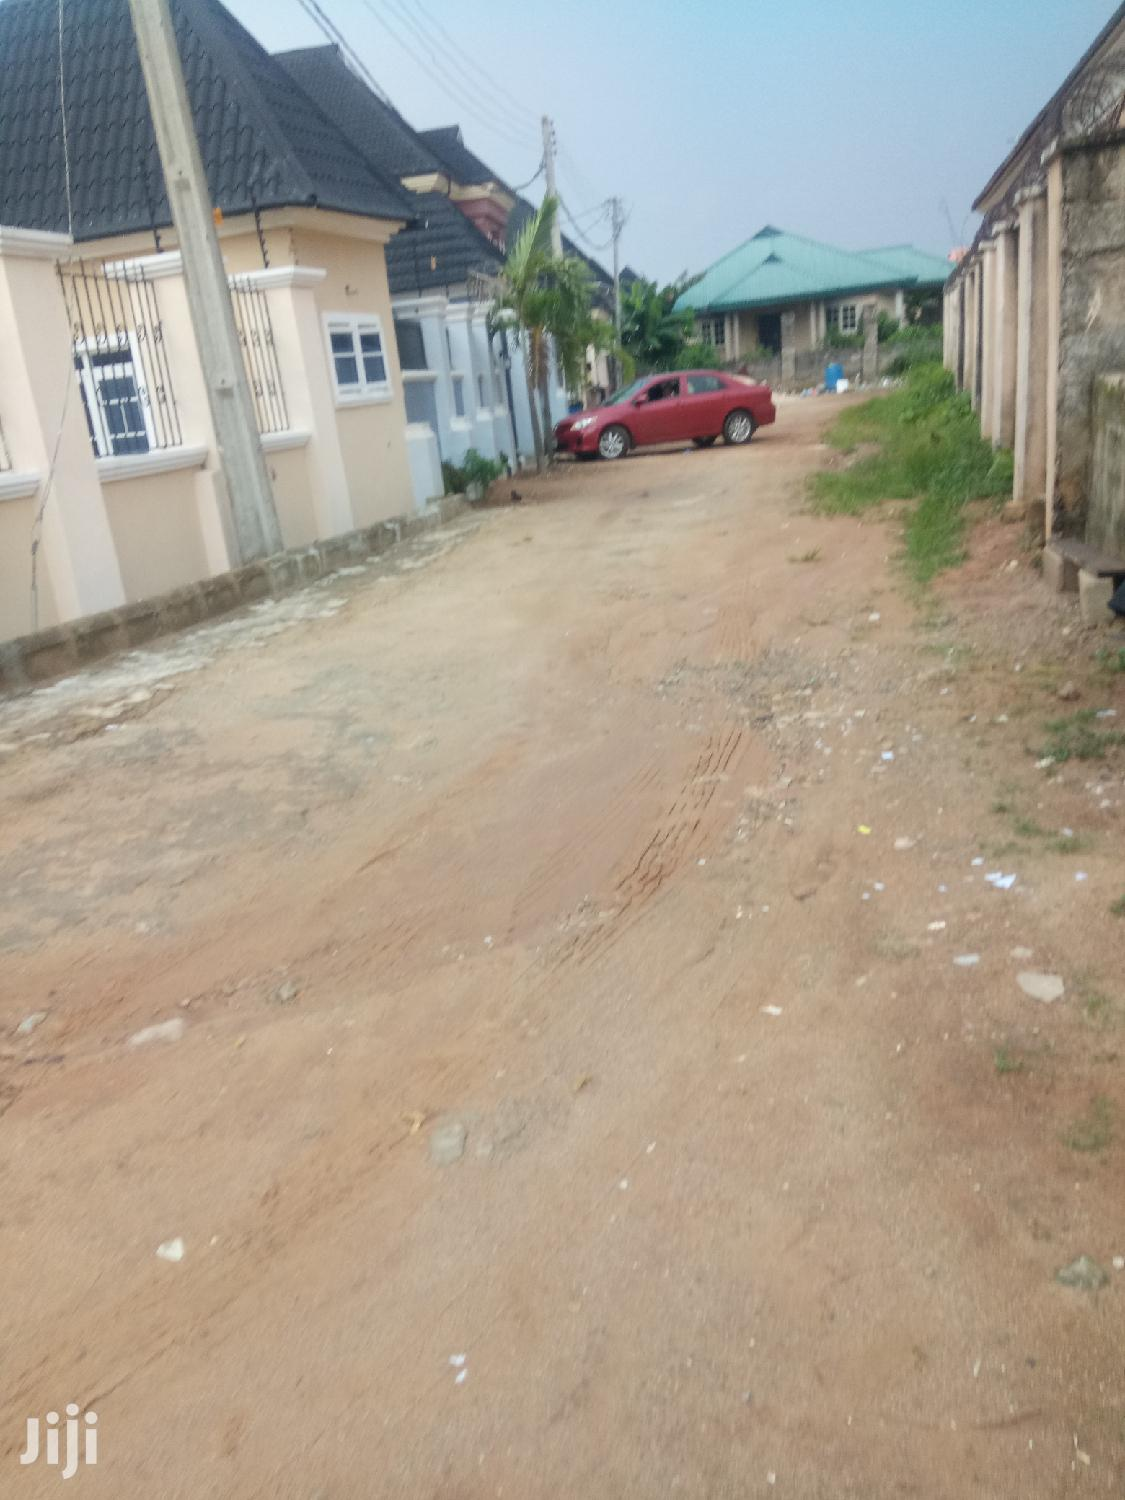 Leveled Genuine Plot Of Land Measuring 100X100FT For Outright Sale